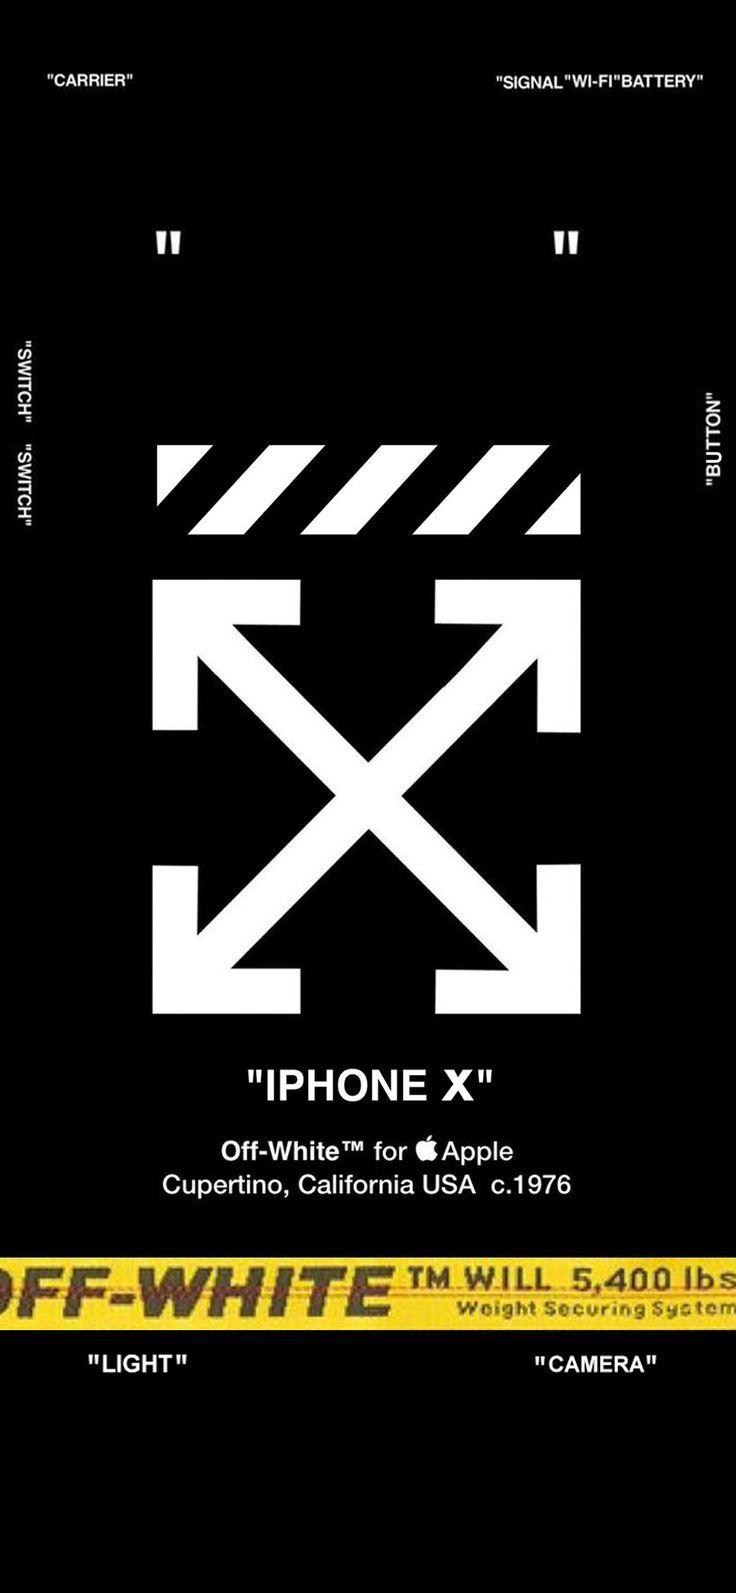 Iphone Wallpaper Off White Lock Screen For Iphone X Wallpaper Fond D Ecran Telephone Fond D Ecran Iphone Apple Arriere Plans Iphone